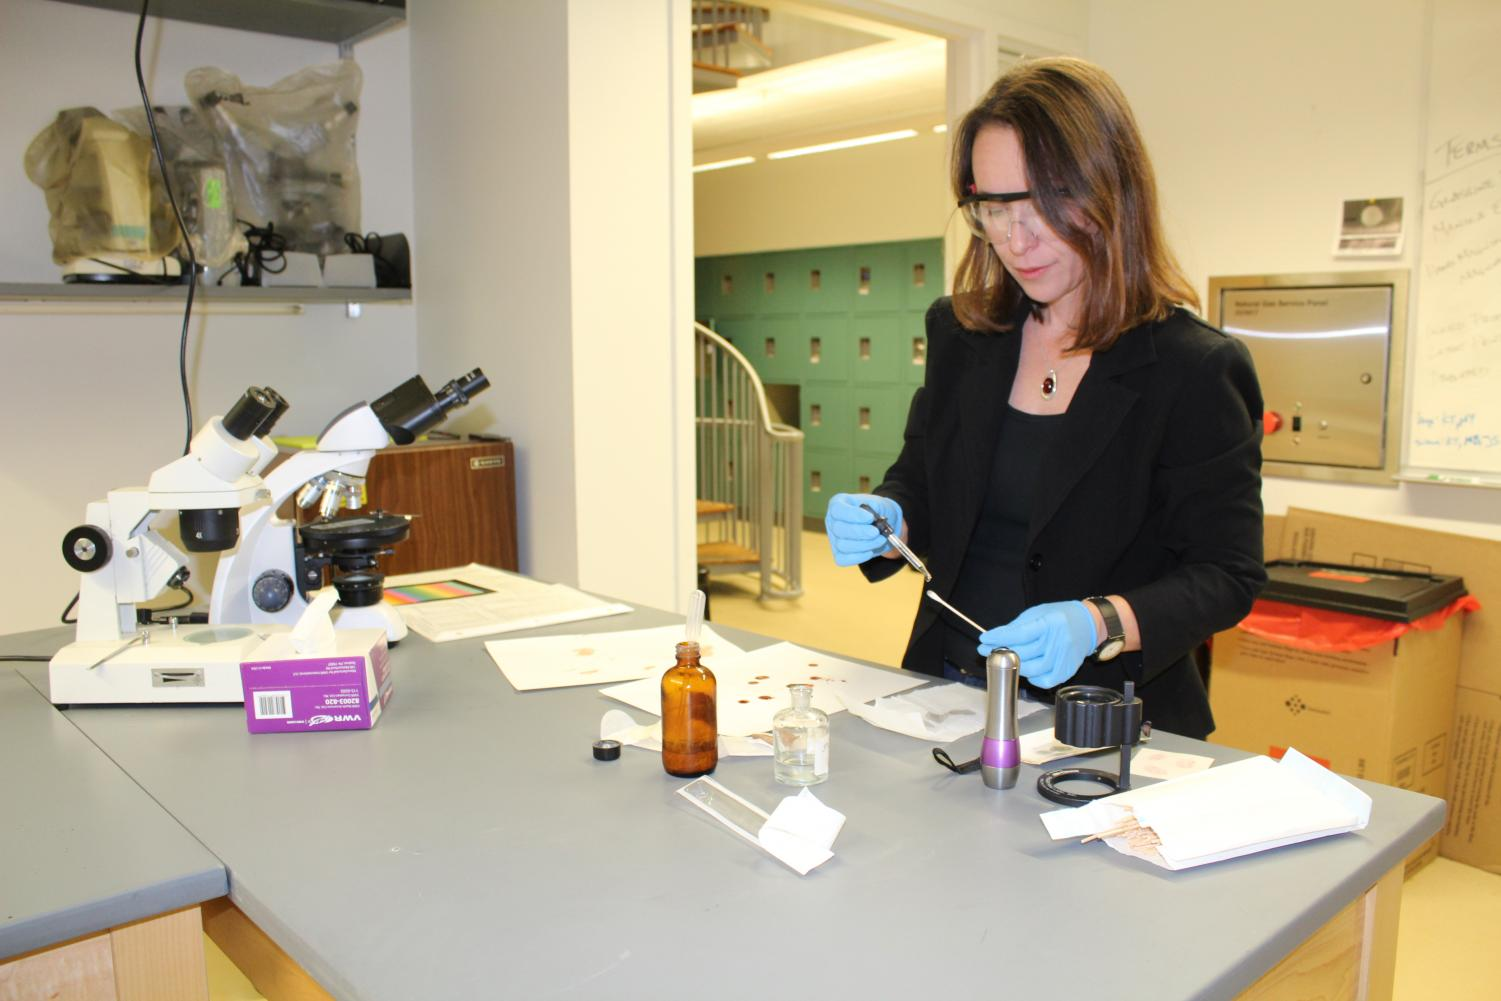 Director of Forensic Chemistry Anna Duggar demonstrates a forensic blood spatter examination and analysis. Duggar is a blood spatter analysis expert who worked alongside various police department crime scene labratories and teaches forensic analysis at Loyola.